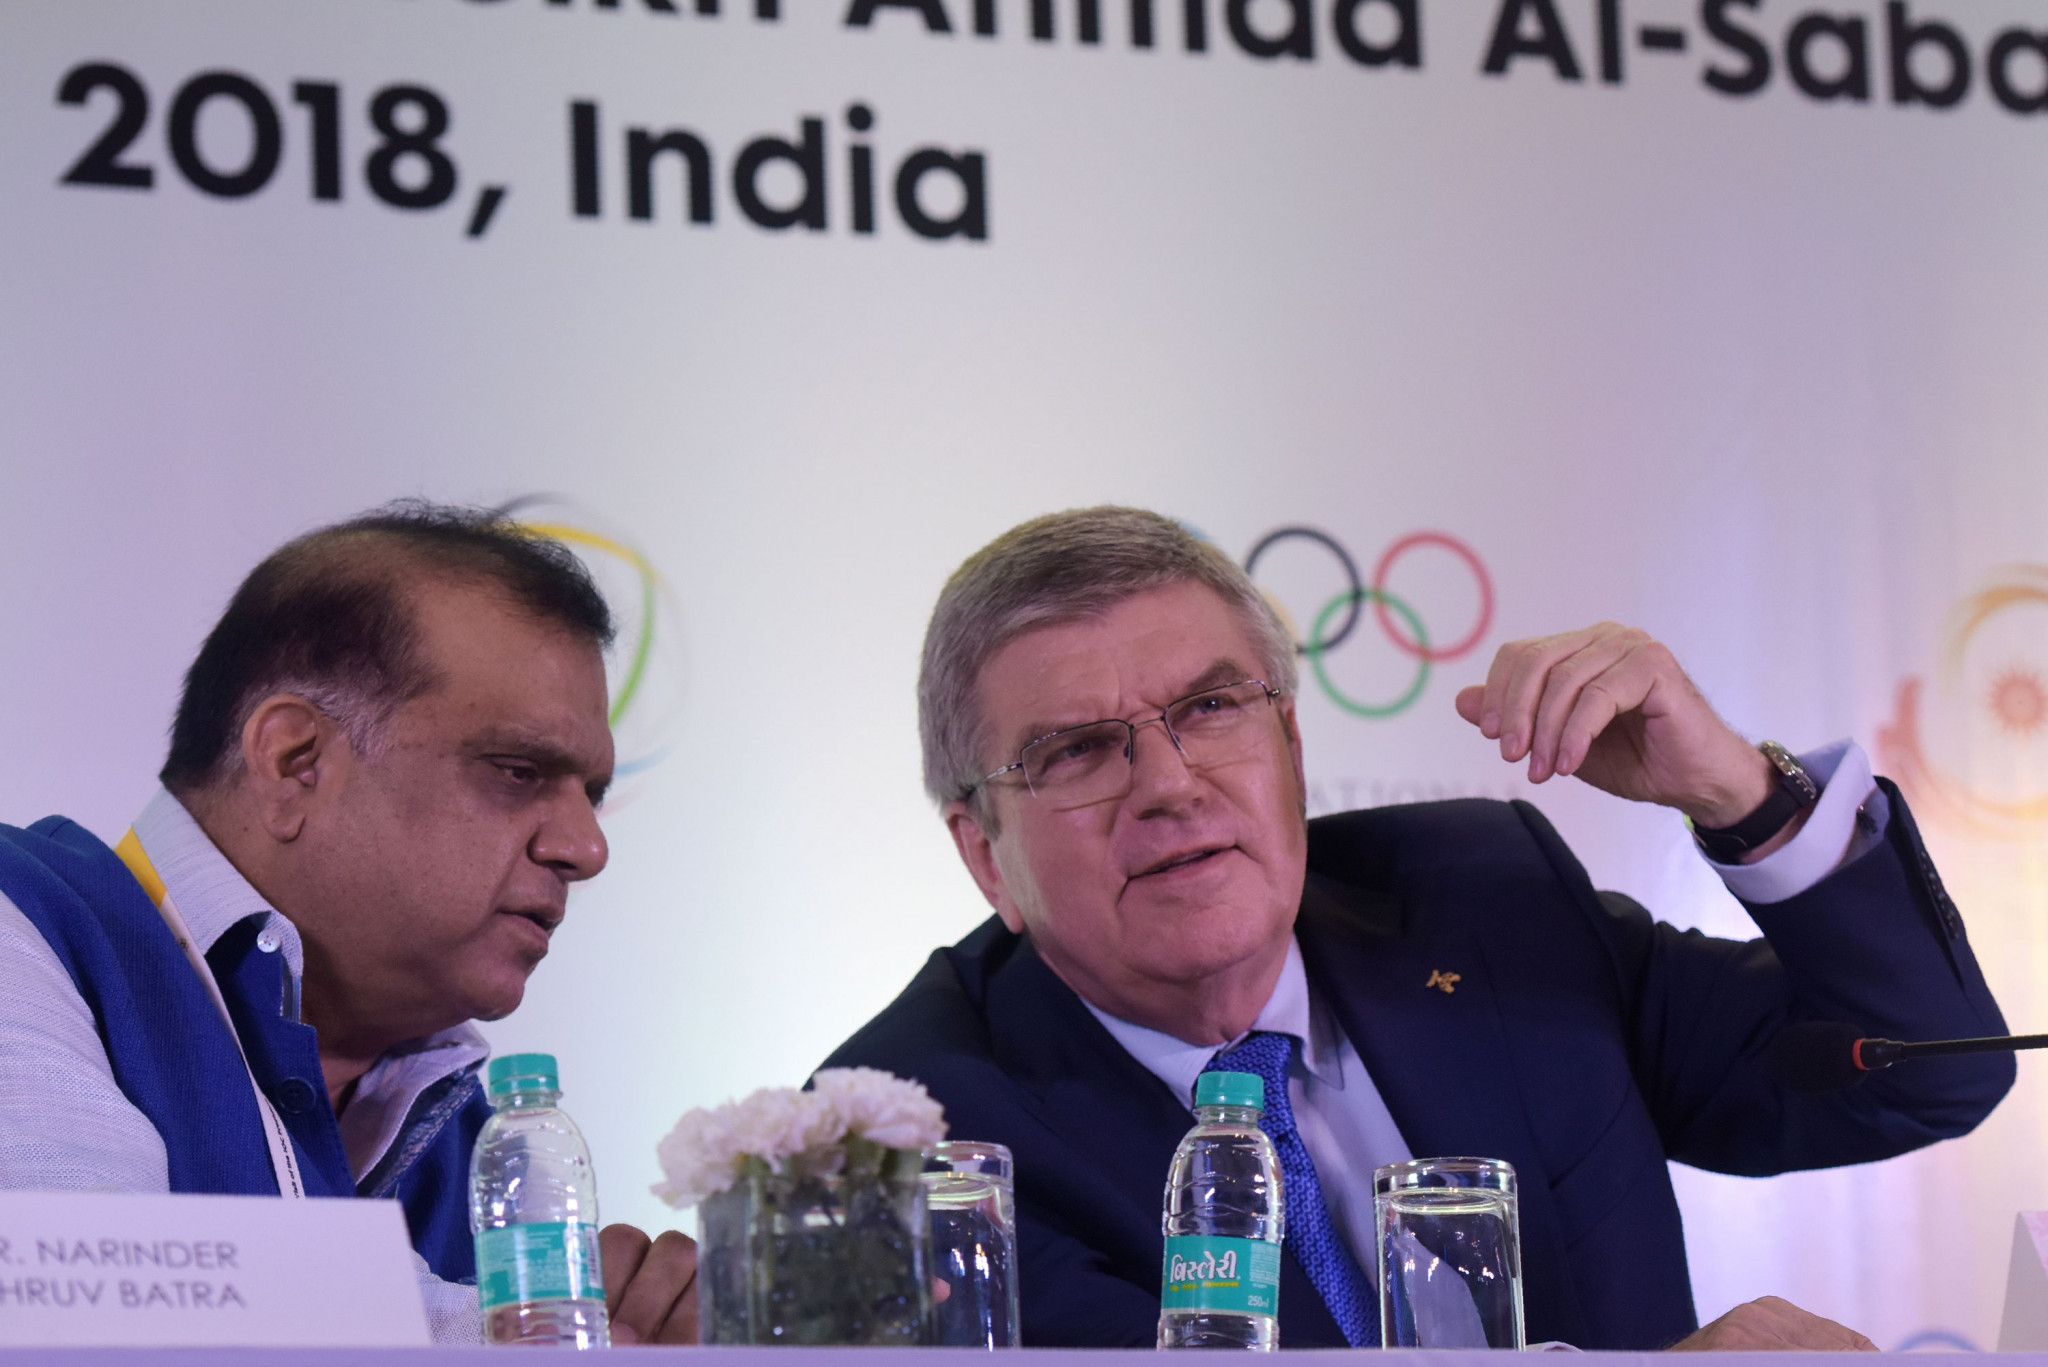 IOA President Narinder Batra's support of the boycott goes against the stance of IOC counterpart Thomas Bach ©Getty Images